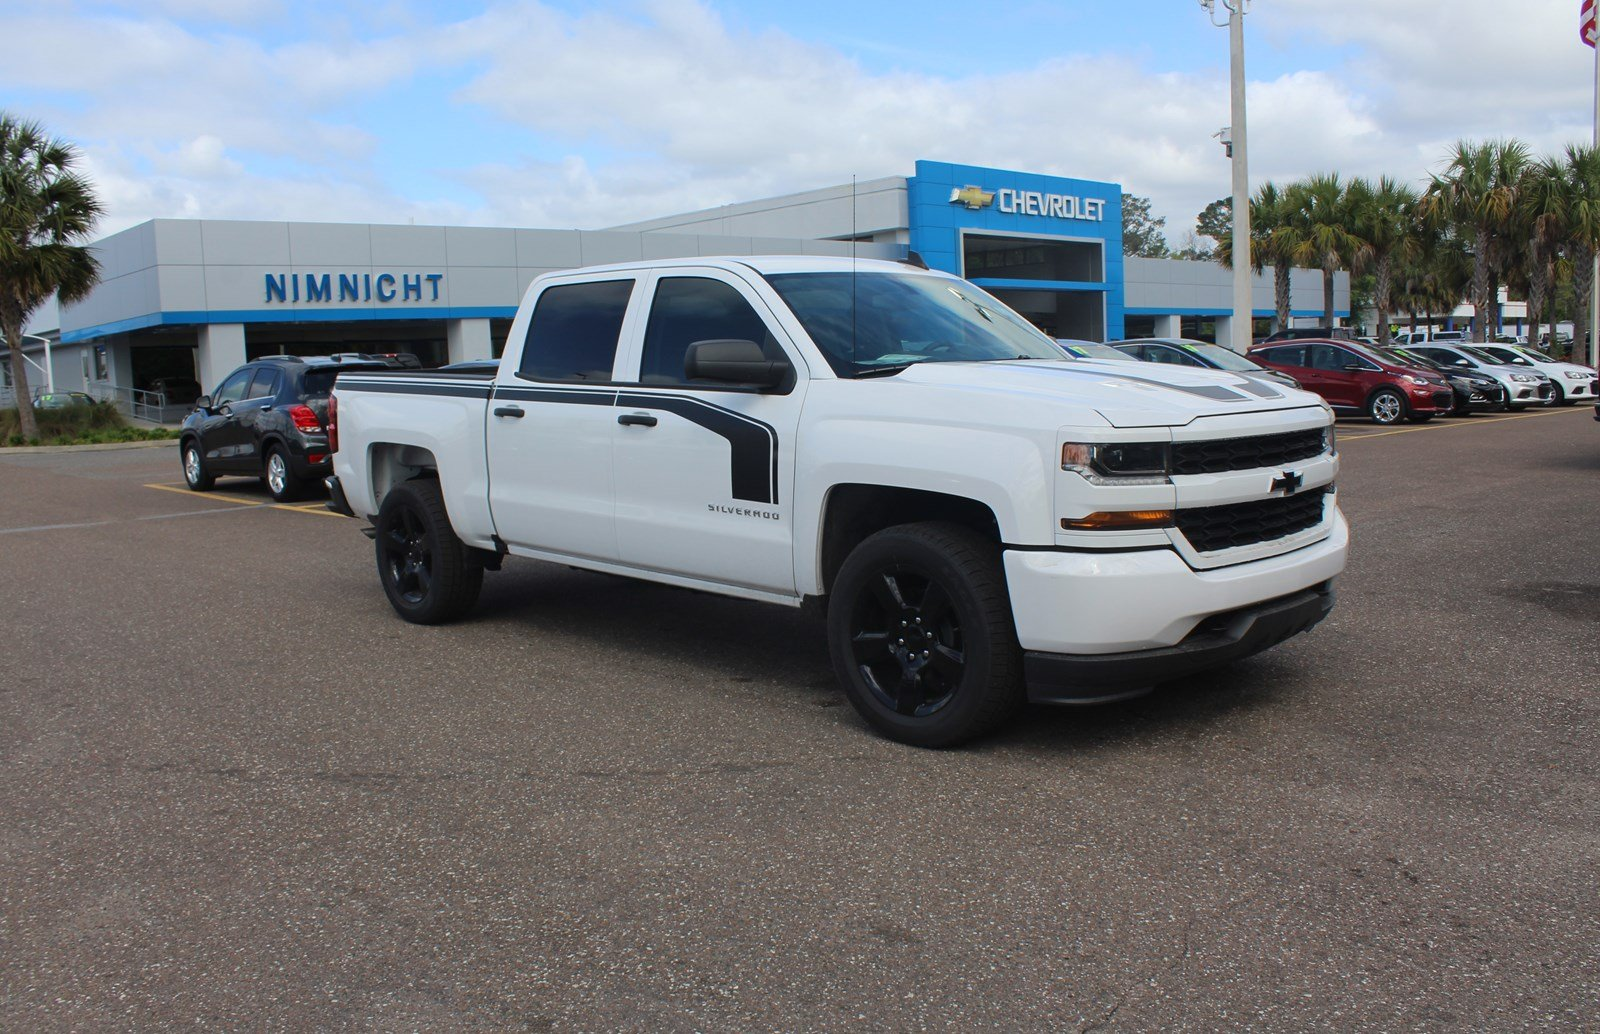 s in chevrolet page review silverado car model depth economy pickup and photo reviews fuel driver original